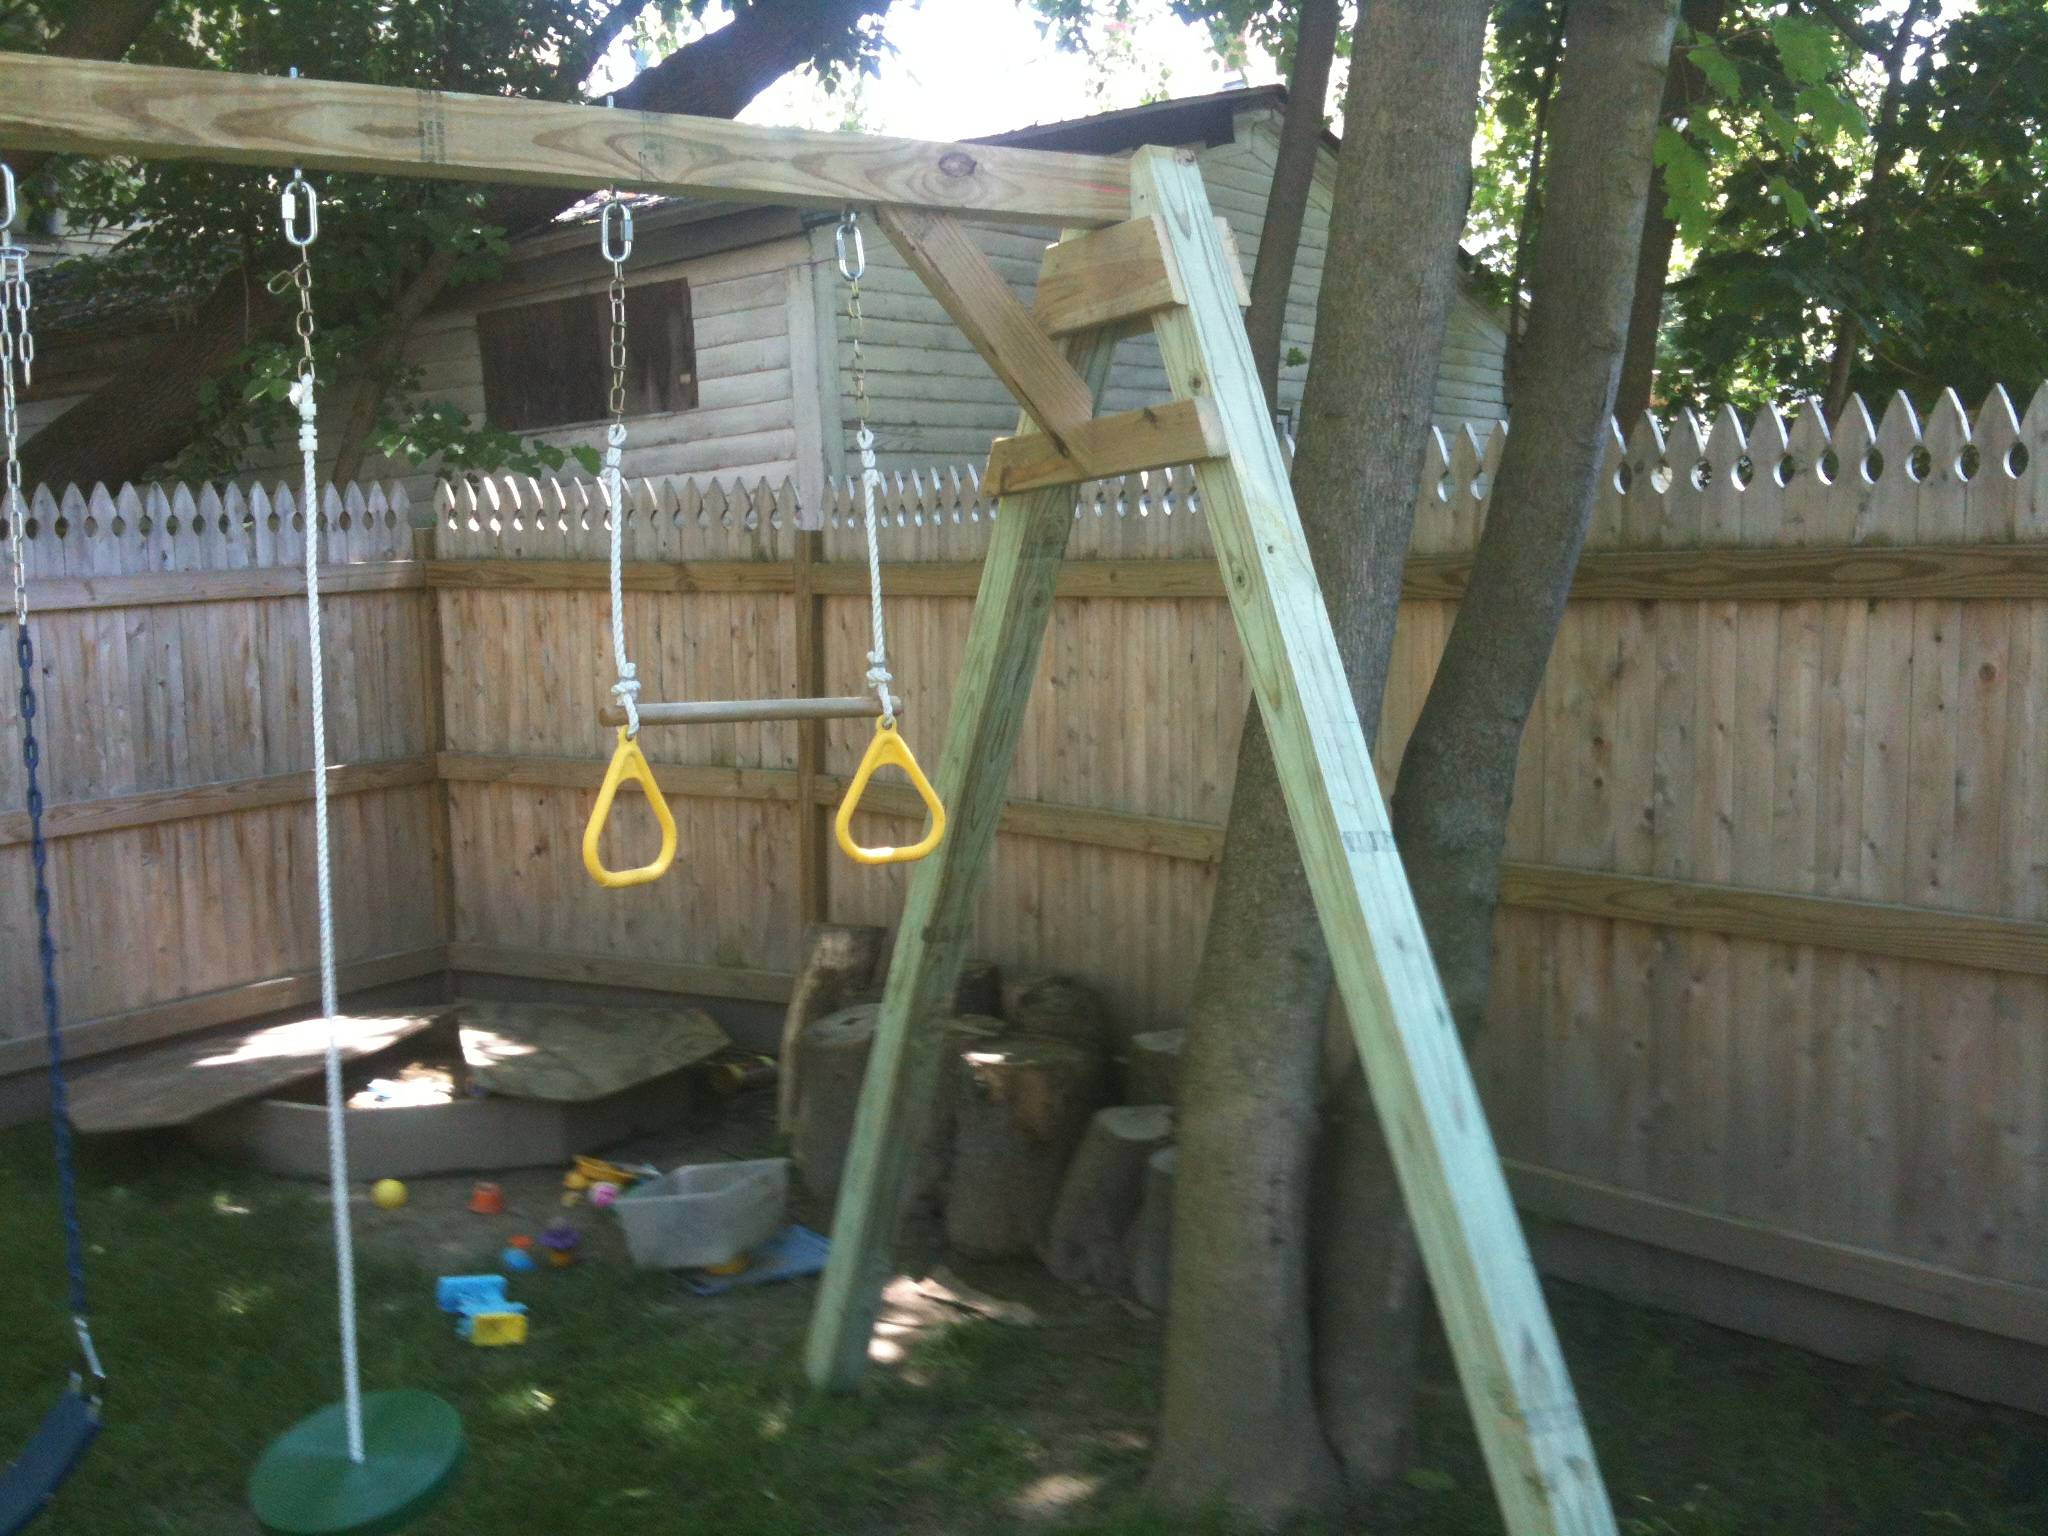 Best ideas about DIY Wood Swing Set Plans . Save or Pin woodworking Plans for building a simple swing set out of Now.